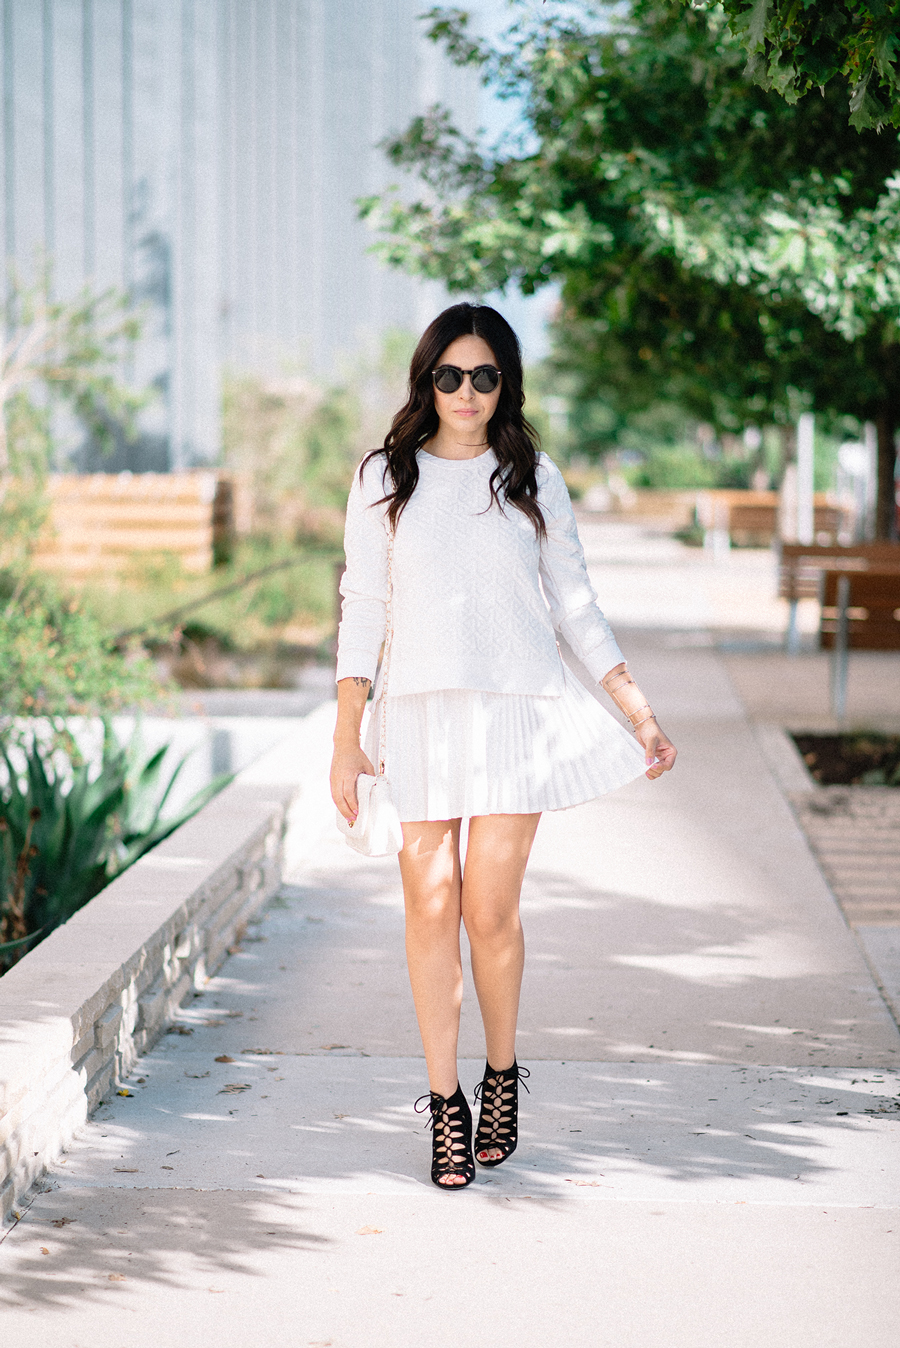 FIXIN-TO-THRILL-CARLOS-BARRON-PHOTOGRAPHY-FALL-NUDE-OCTOBER-CHIC-ATX-AUSTIN-STYLE-BLOG-BLACK-WHITE-LACE-SANDALS-TRENDS-FW15-TRENDY-CHIC-GLAM-FASHION-TEXAS-3